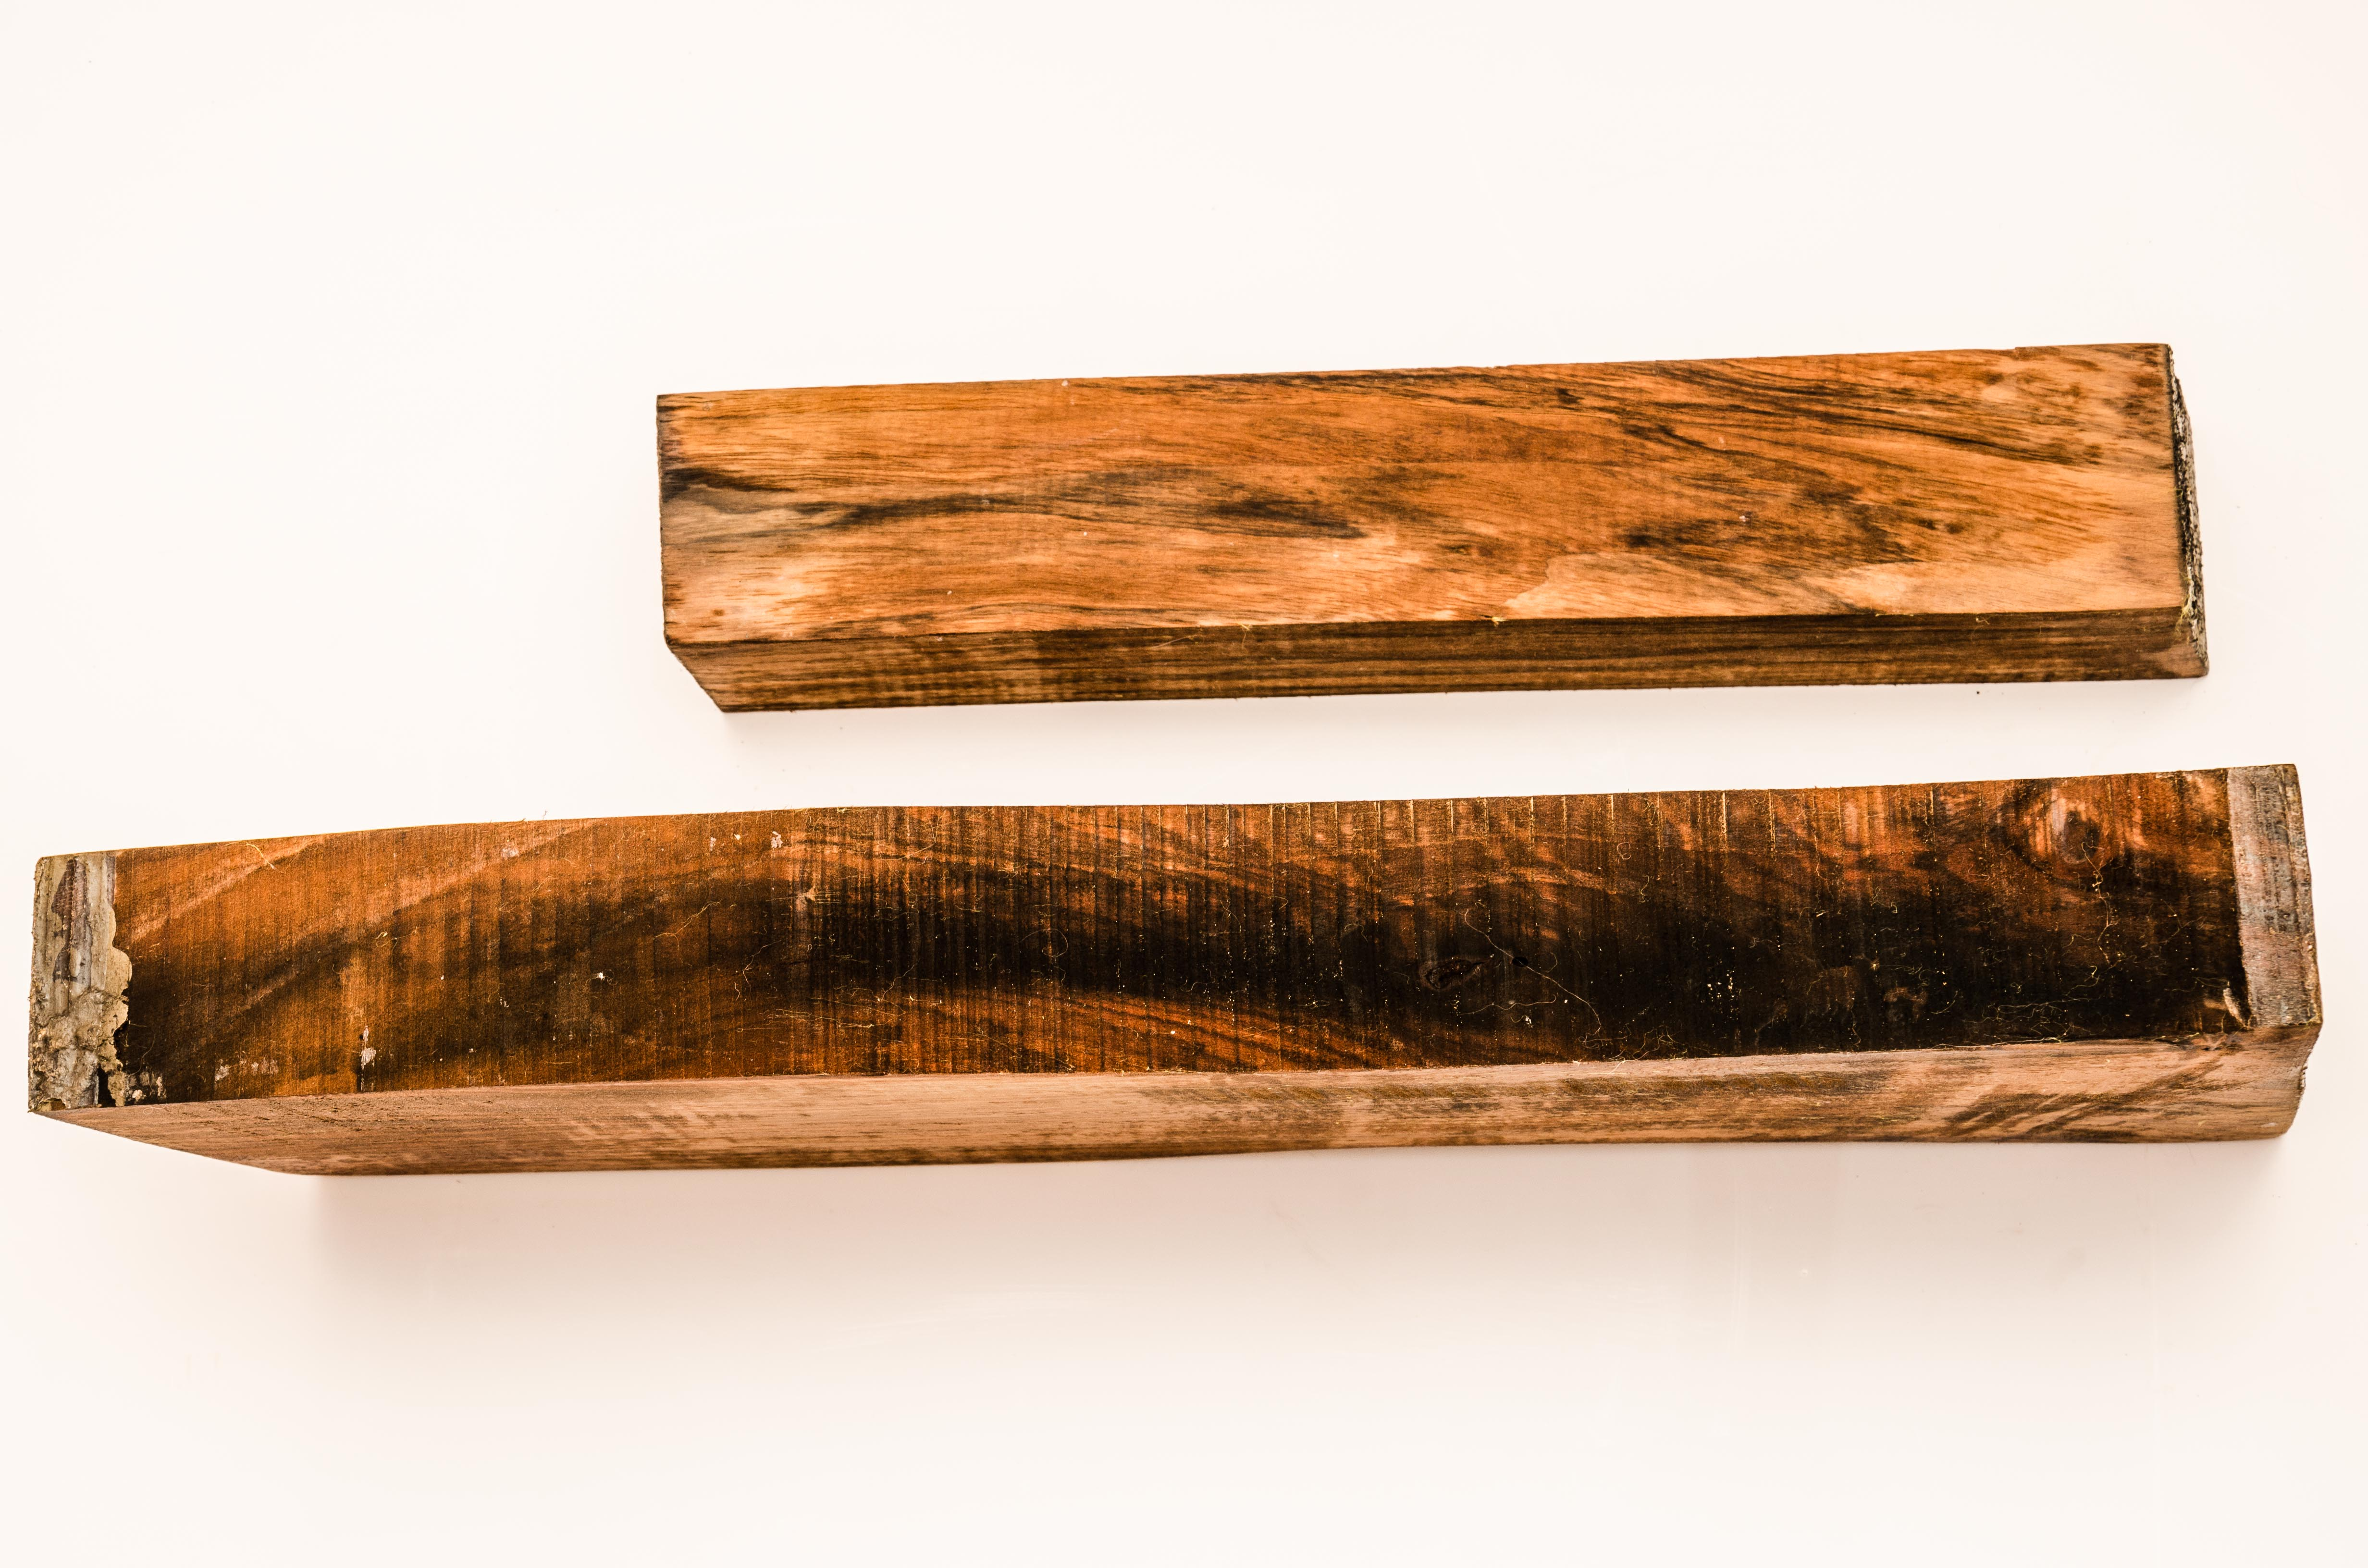 walnut_stock_blanks_for_guns_and_rifles-0261